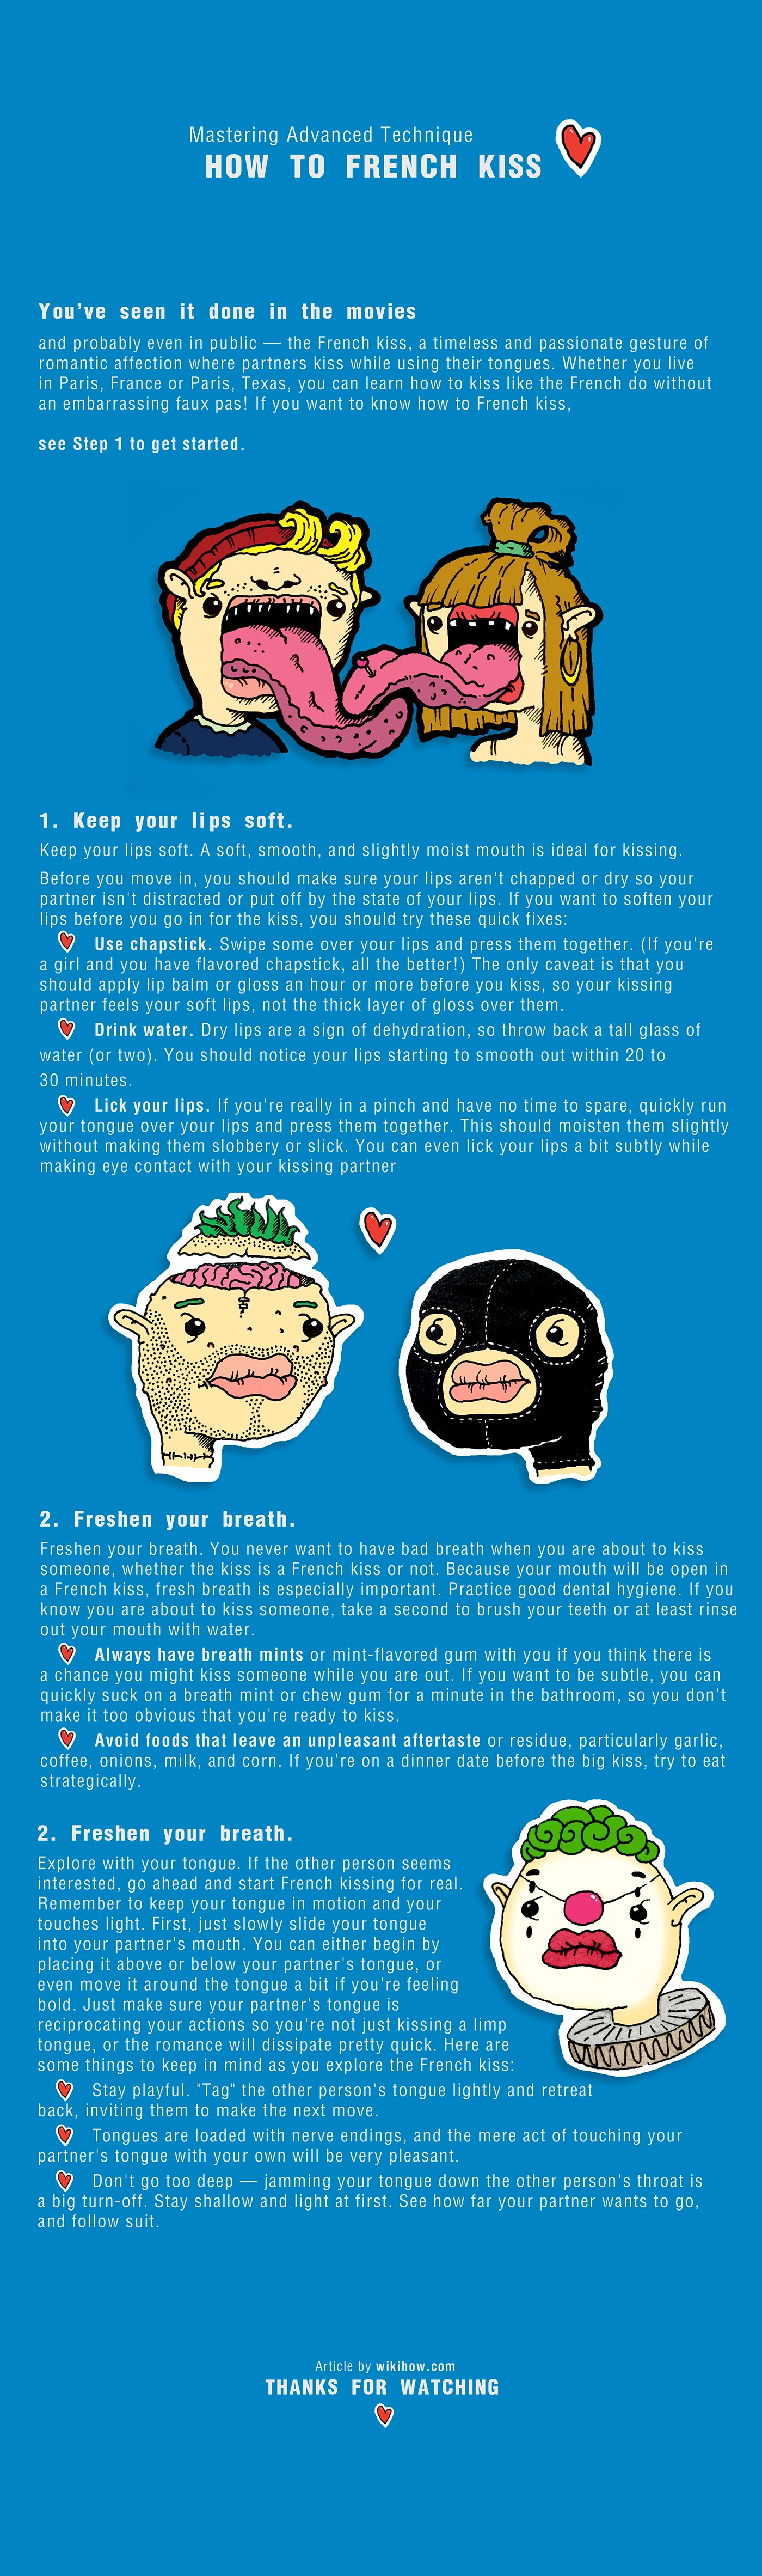 Art French kiss howto